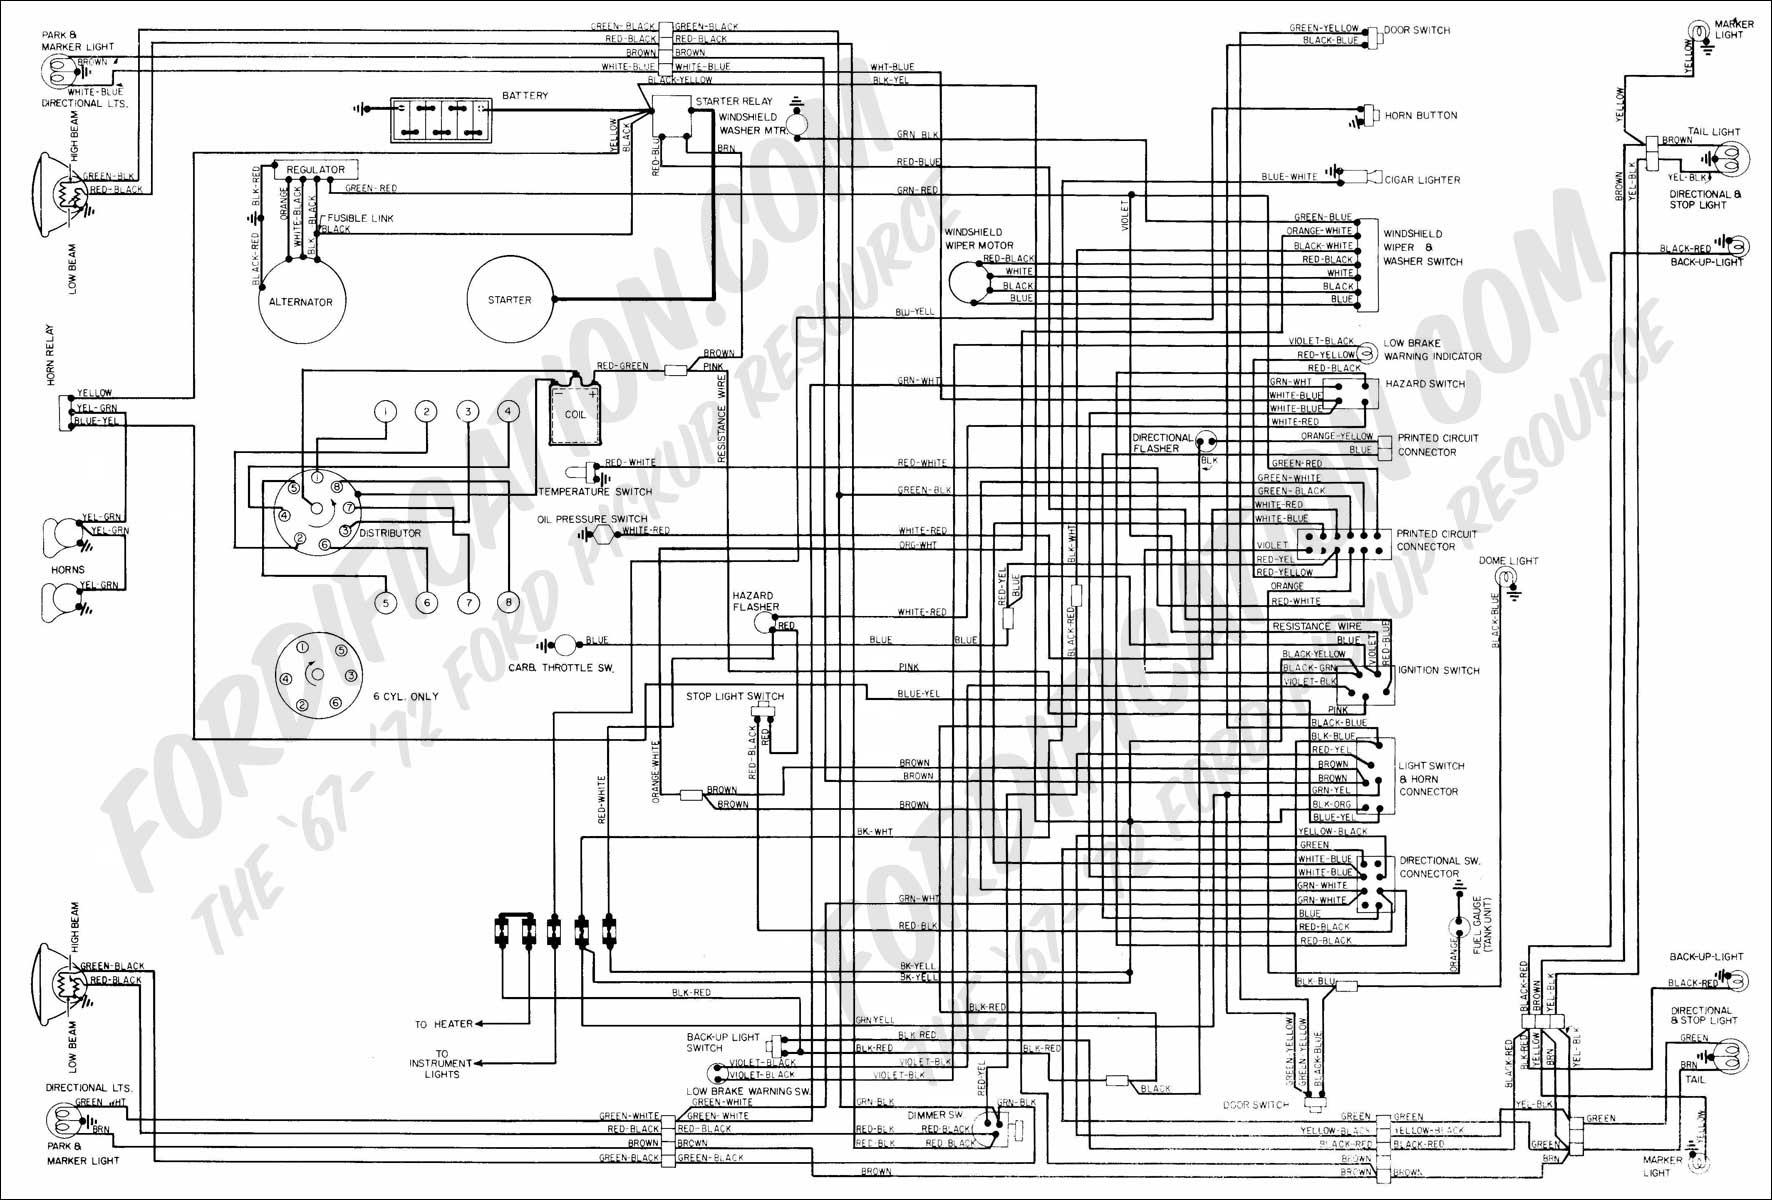 3 wire alternator wiring diagram and resistor with Index11 on Pontiac Vibe Fuel Pump Relay Location in addition Regrecconversion together with Bosch HEI further Viewtopic besides 5 Wire Alternator Wiring Diagram.